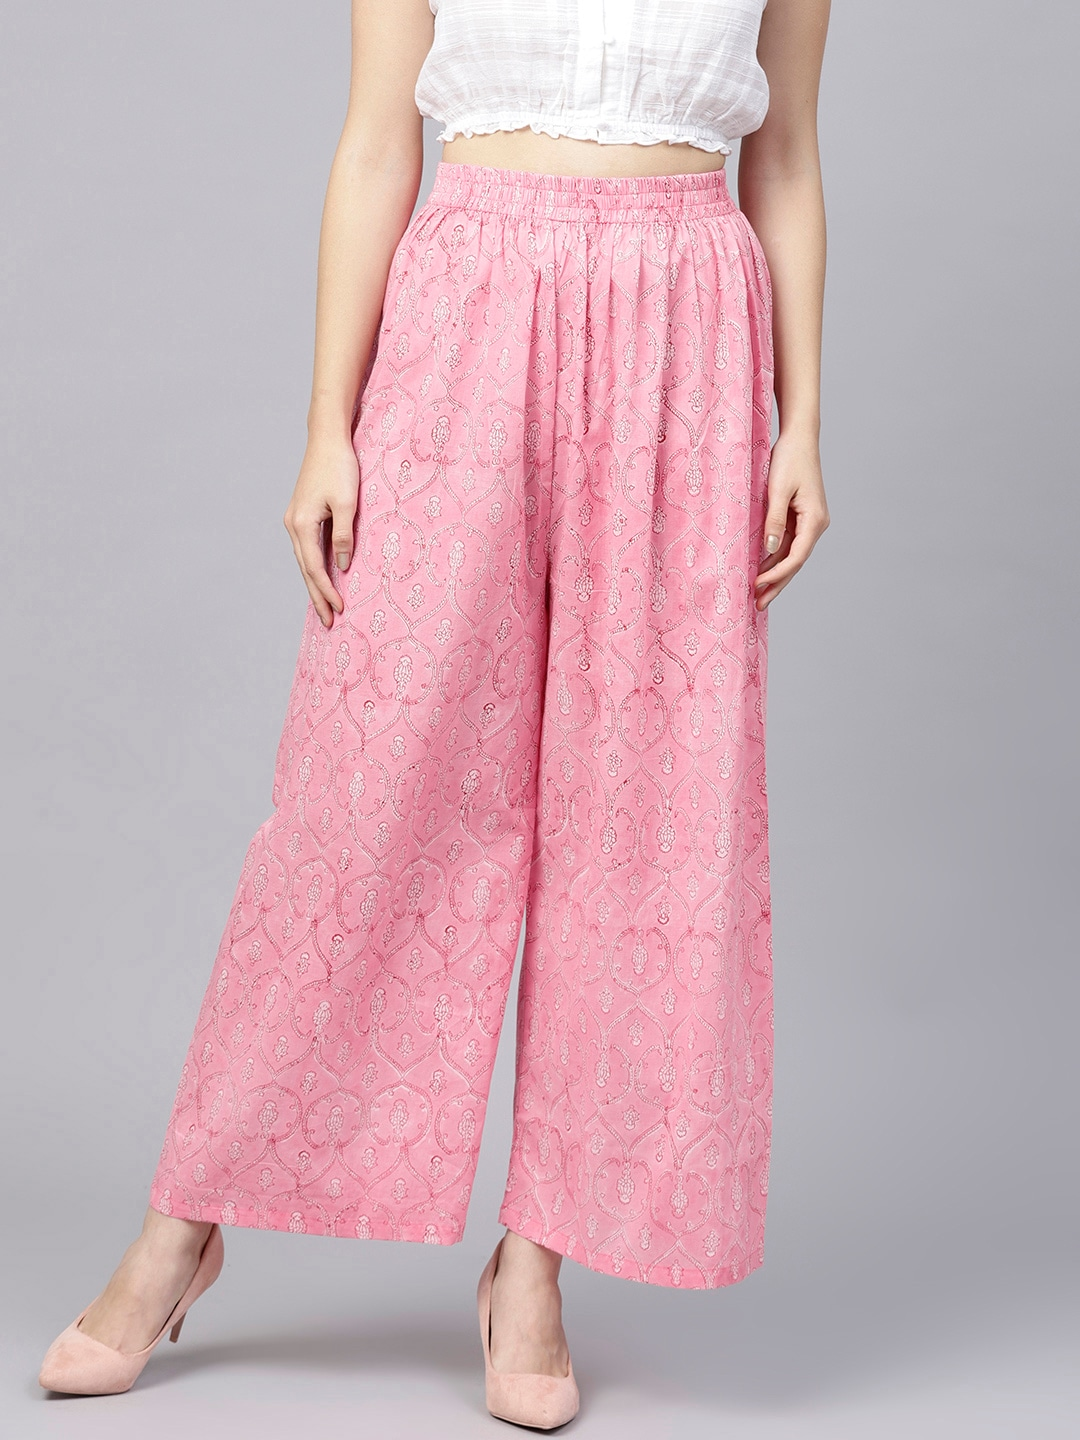 f660ec96e5d4a0 Women s Clothes - Buy Clothes for Women Online in India